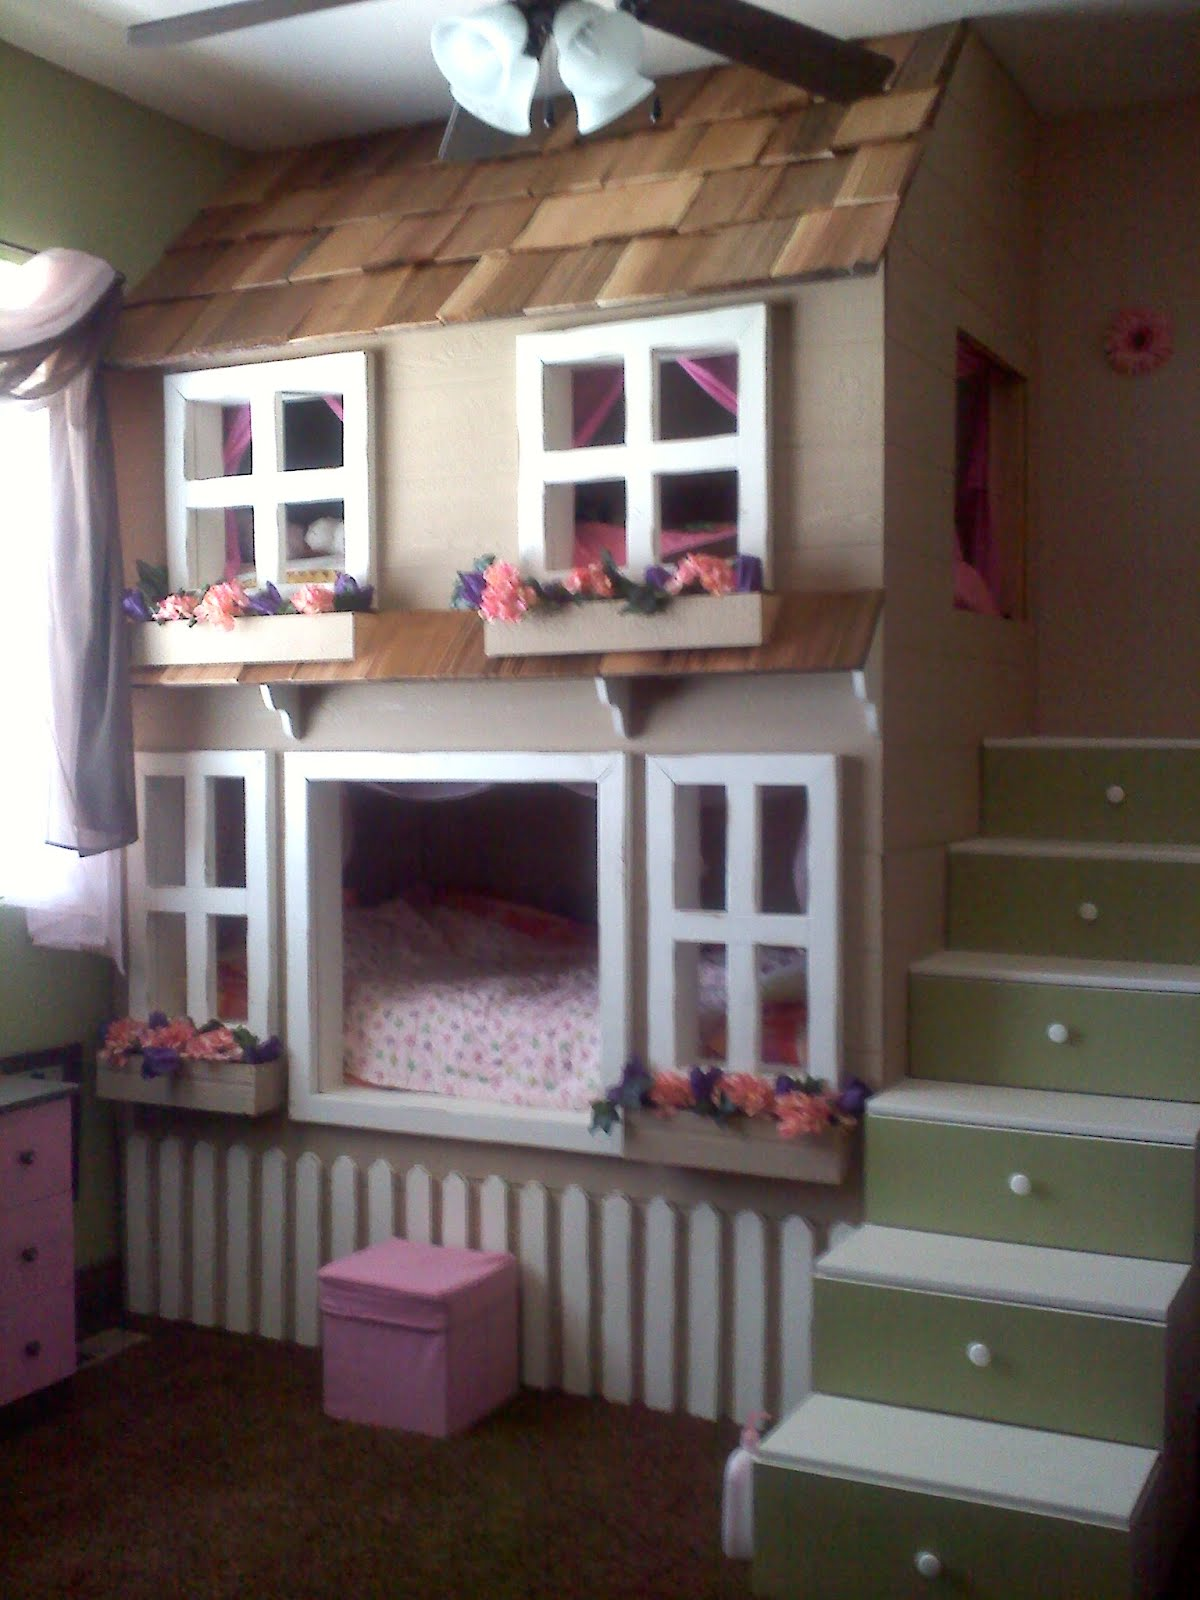 Creative Tree House Bunk Bed With Many Windows